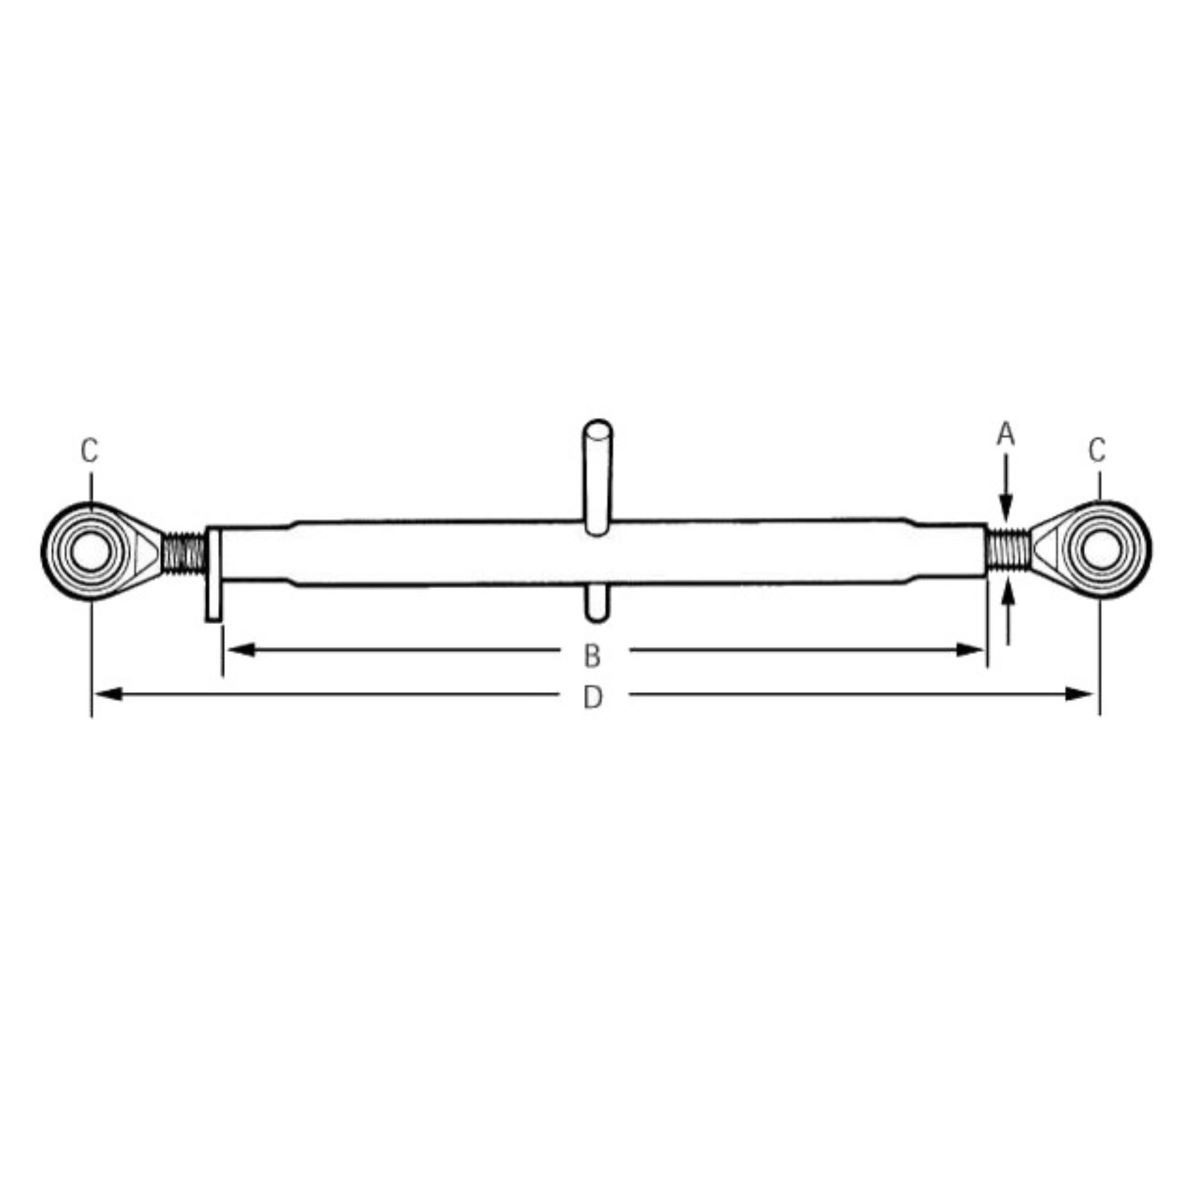 TOPSTANG 320MM CAT.1 Extra info: Topstang voor mini-tractoren Categorie 1 Afmetingen: A: M27 B: 320mm C: 19mm D: 420 – 550 mm